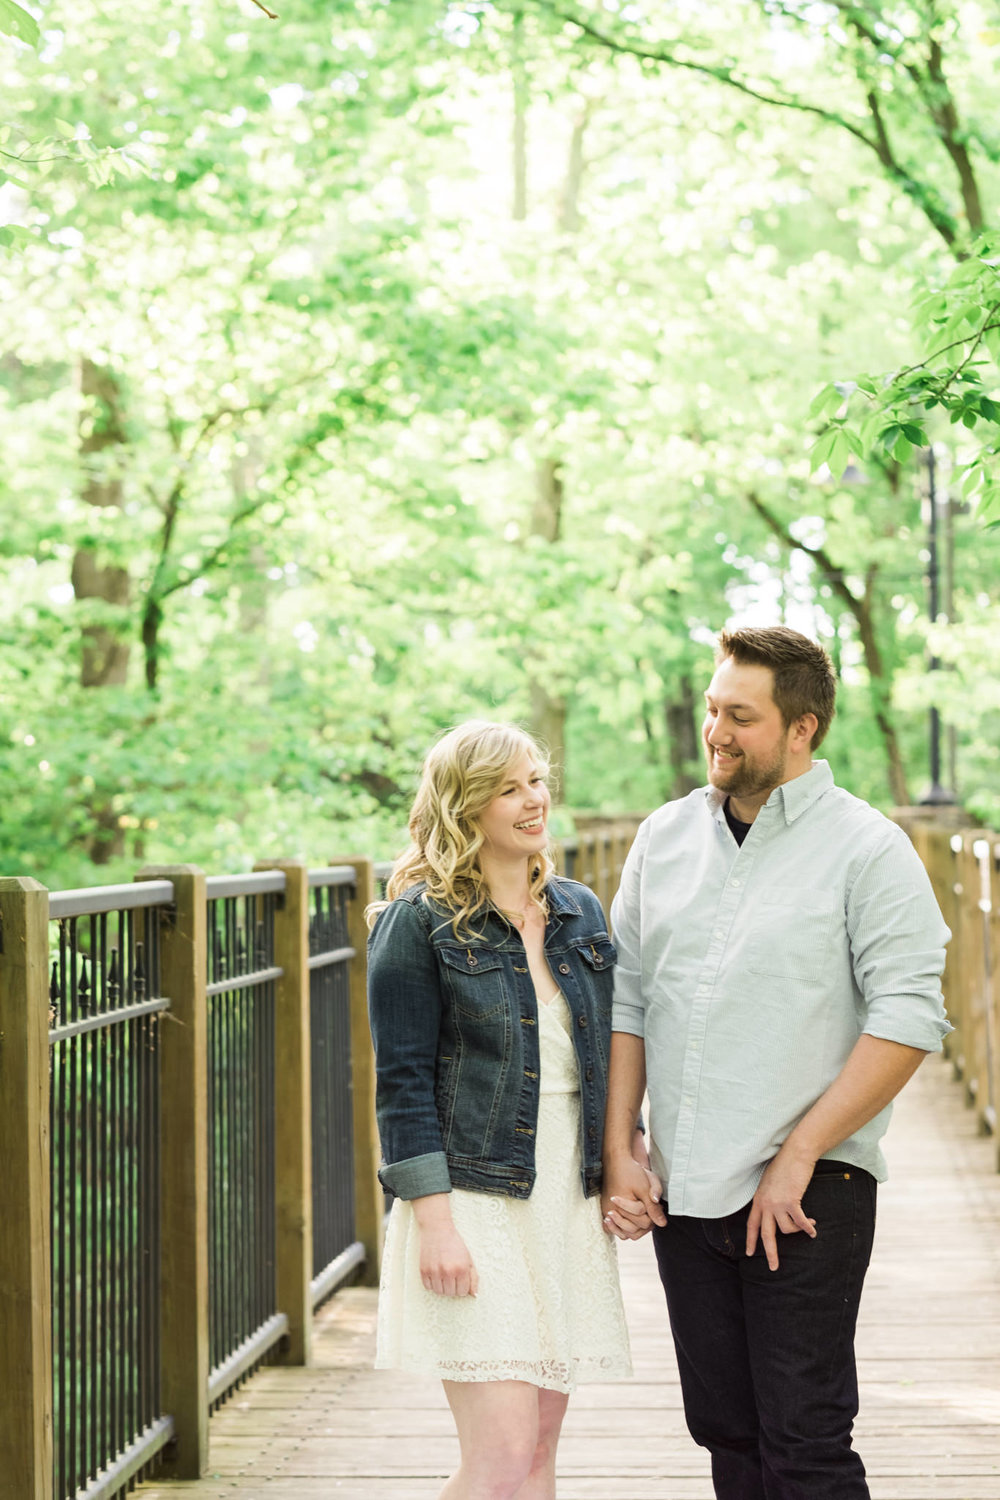 Lauren&Zach_Engagement_Blog_0001.jpg